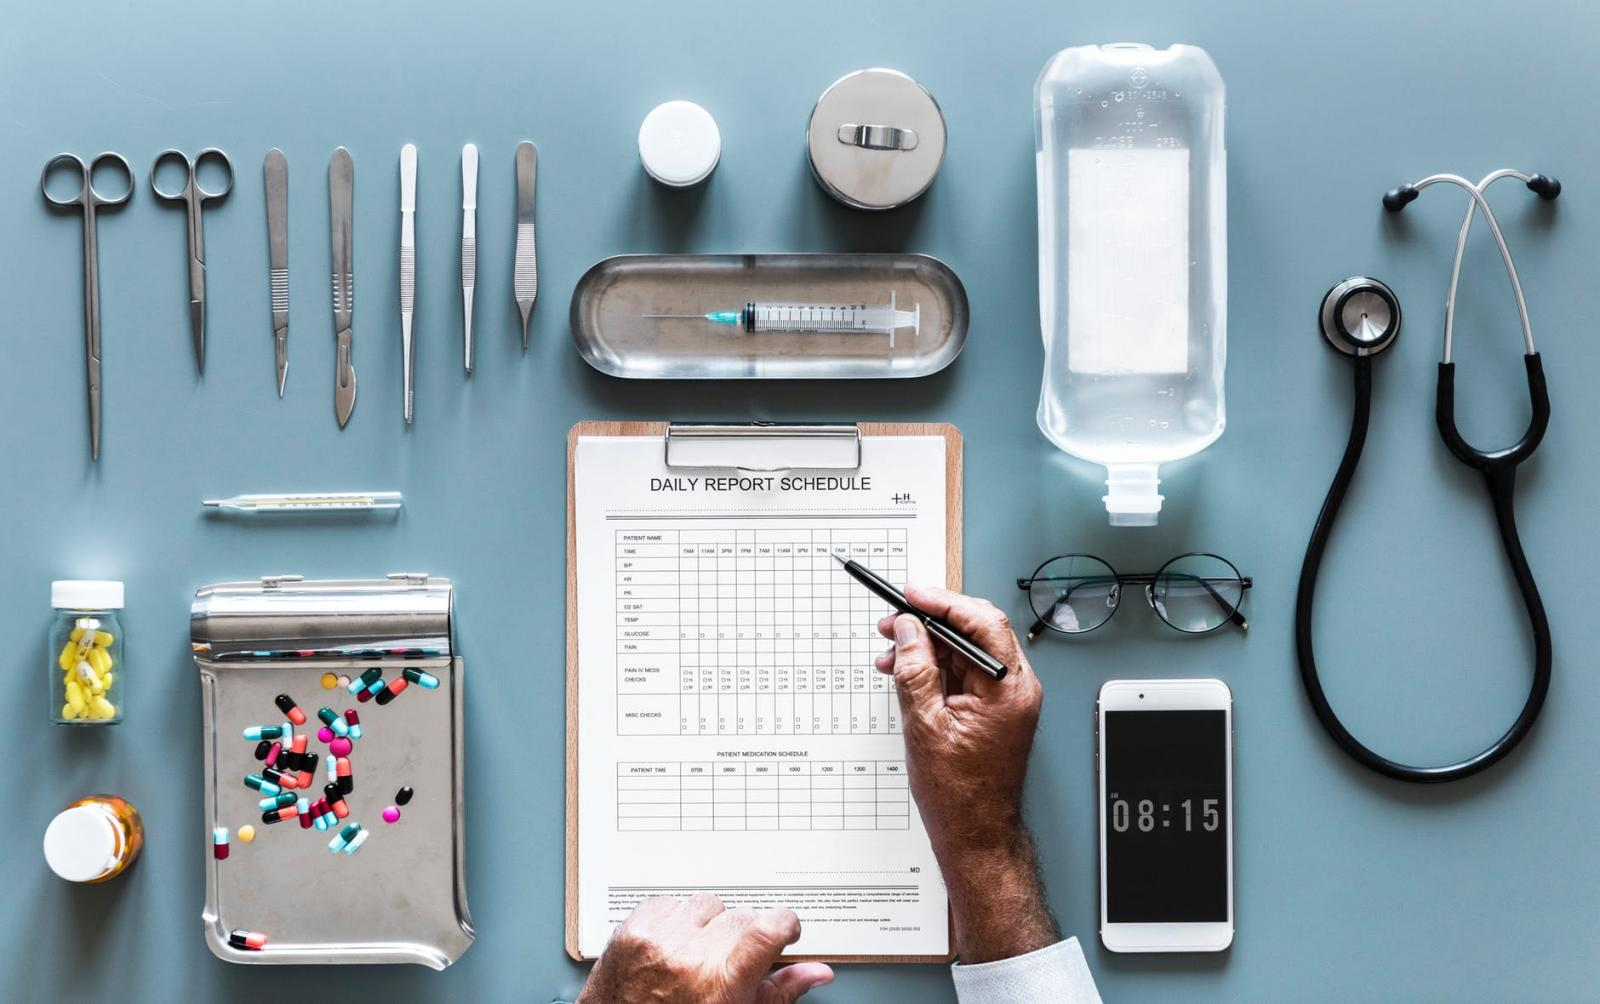 6 innovations from Future Healthcare 2019